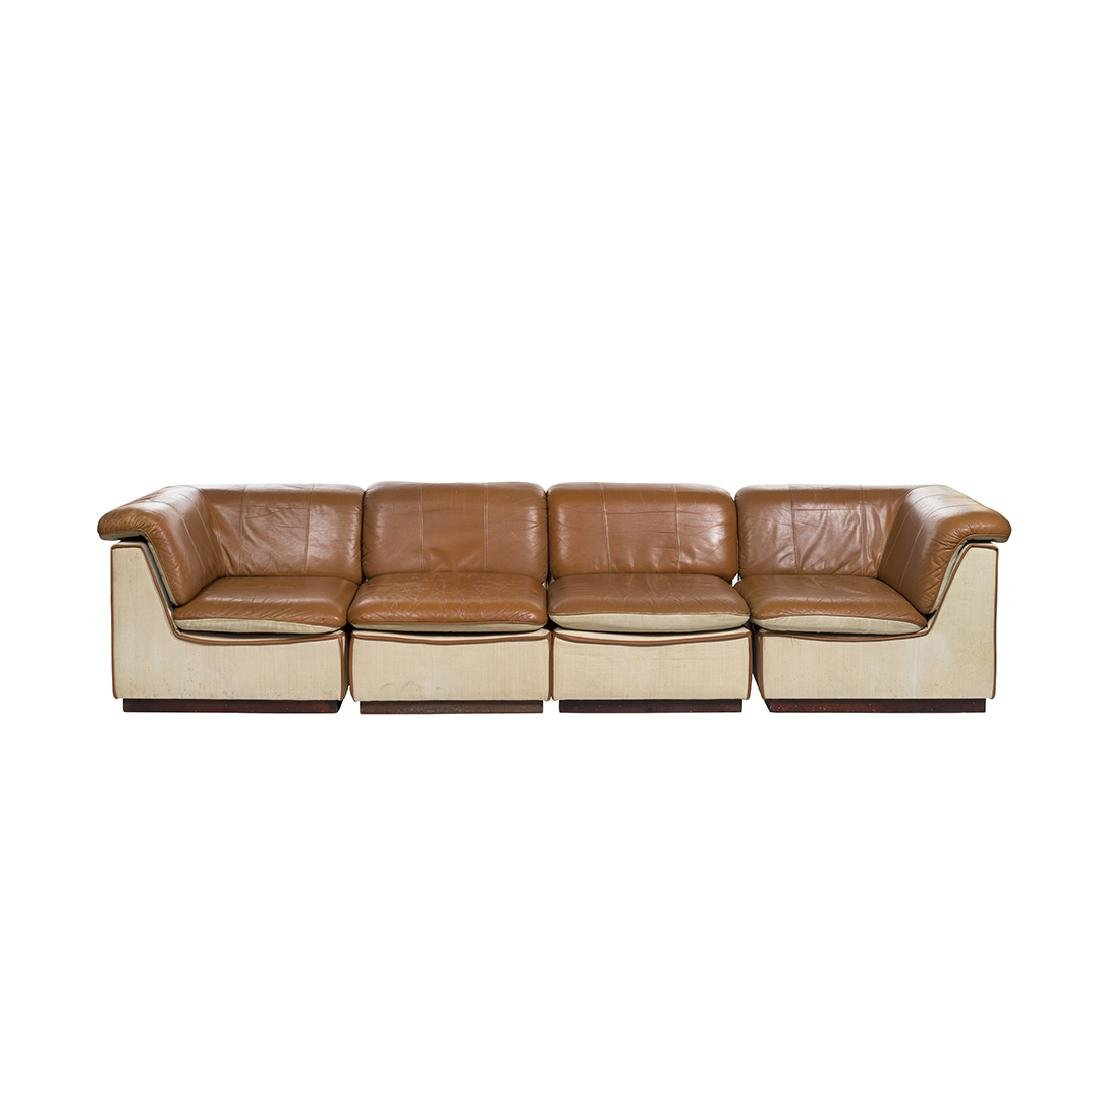 Finnish Modular Sofa - 10